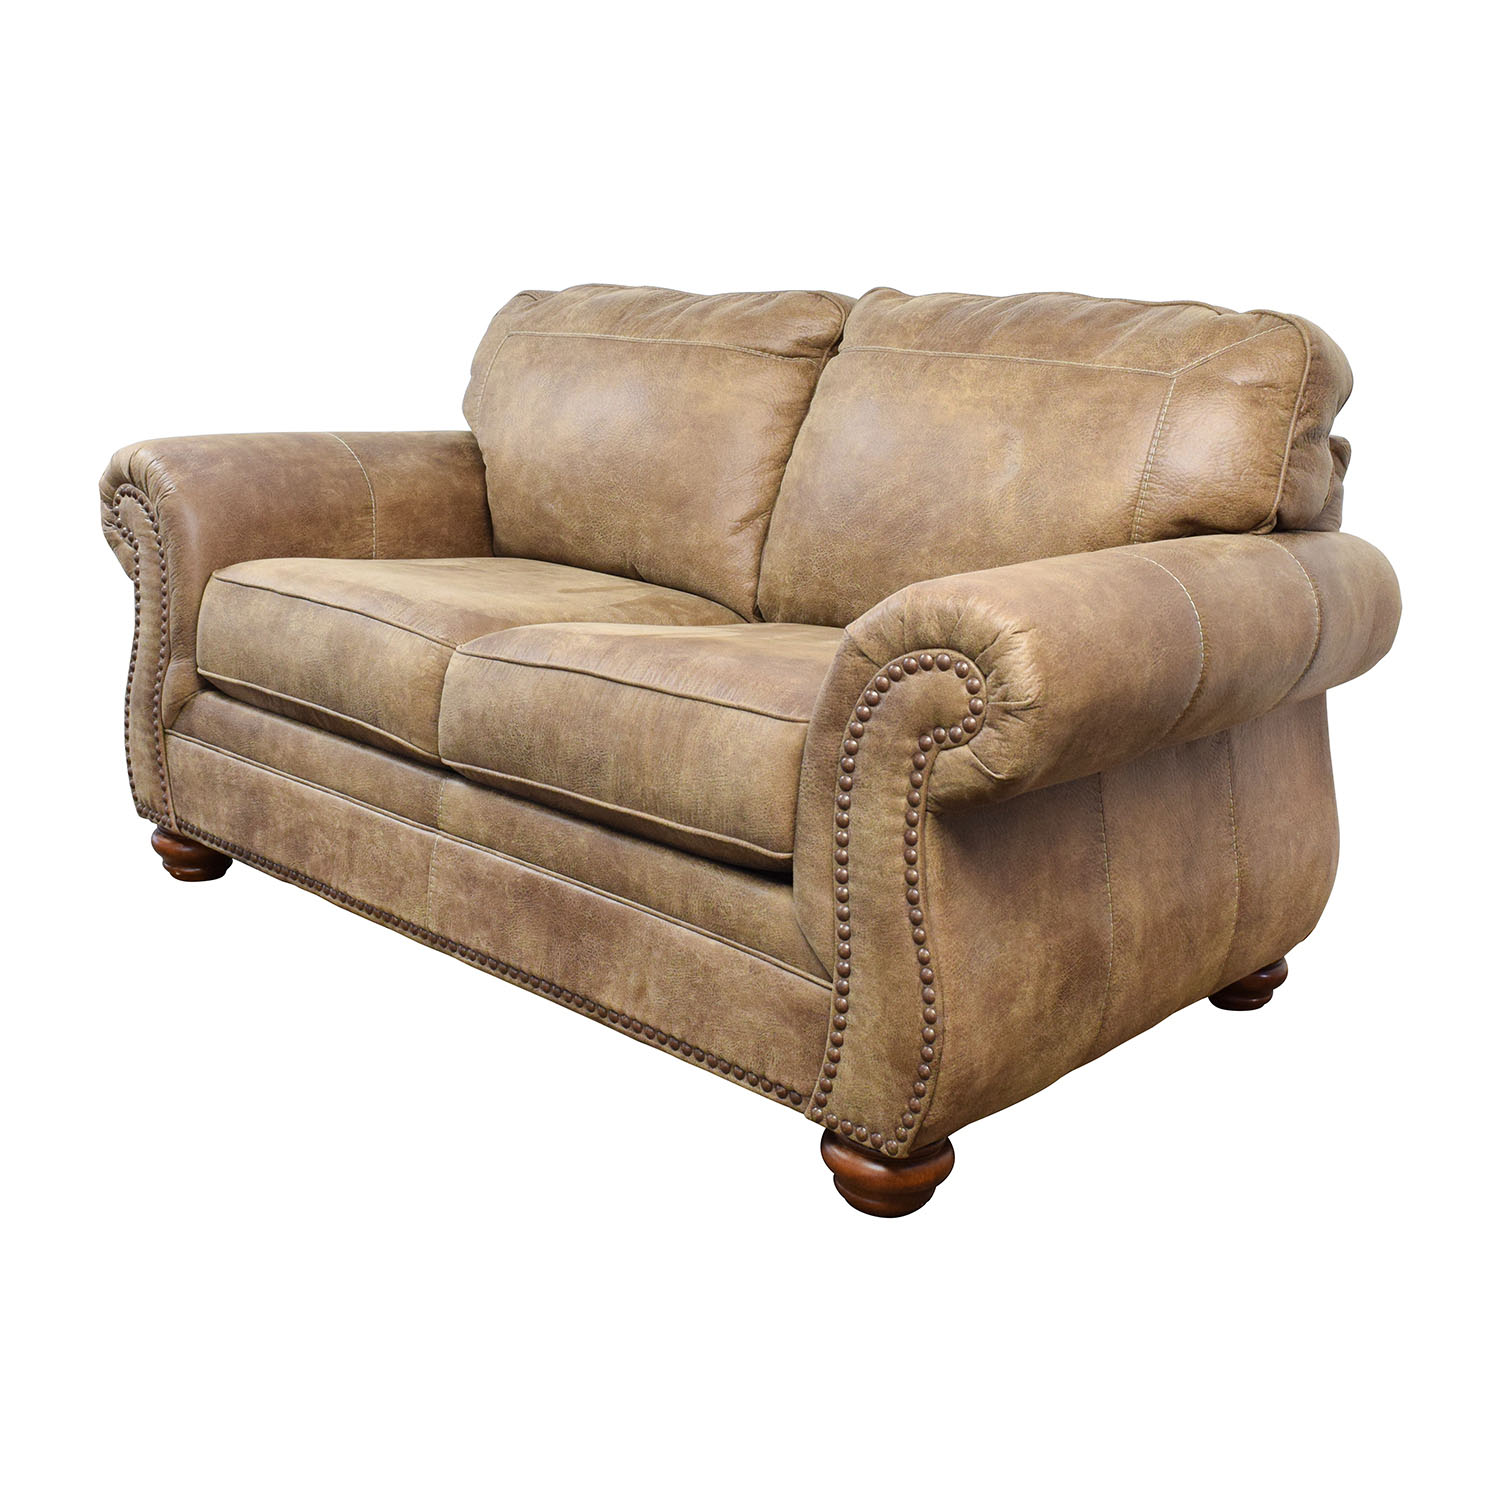 57 Off Signature Design By Ashley Signature Design By Ashley Tallow Faux Leather Loveseat Sofas